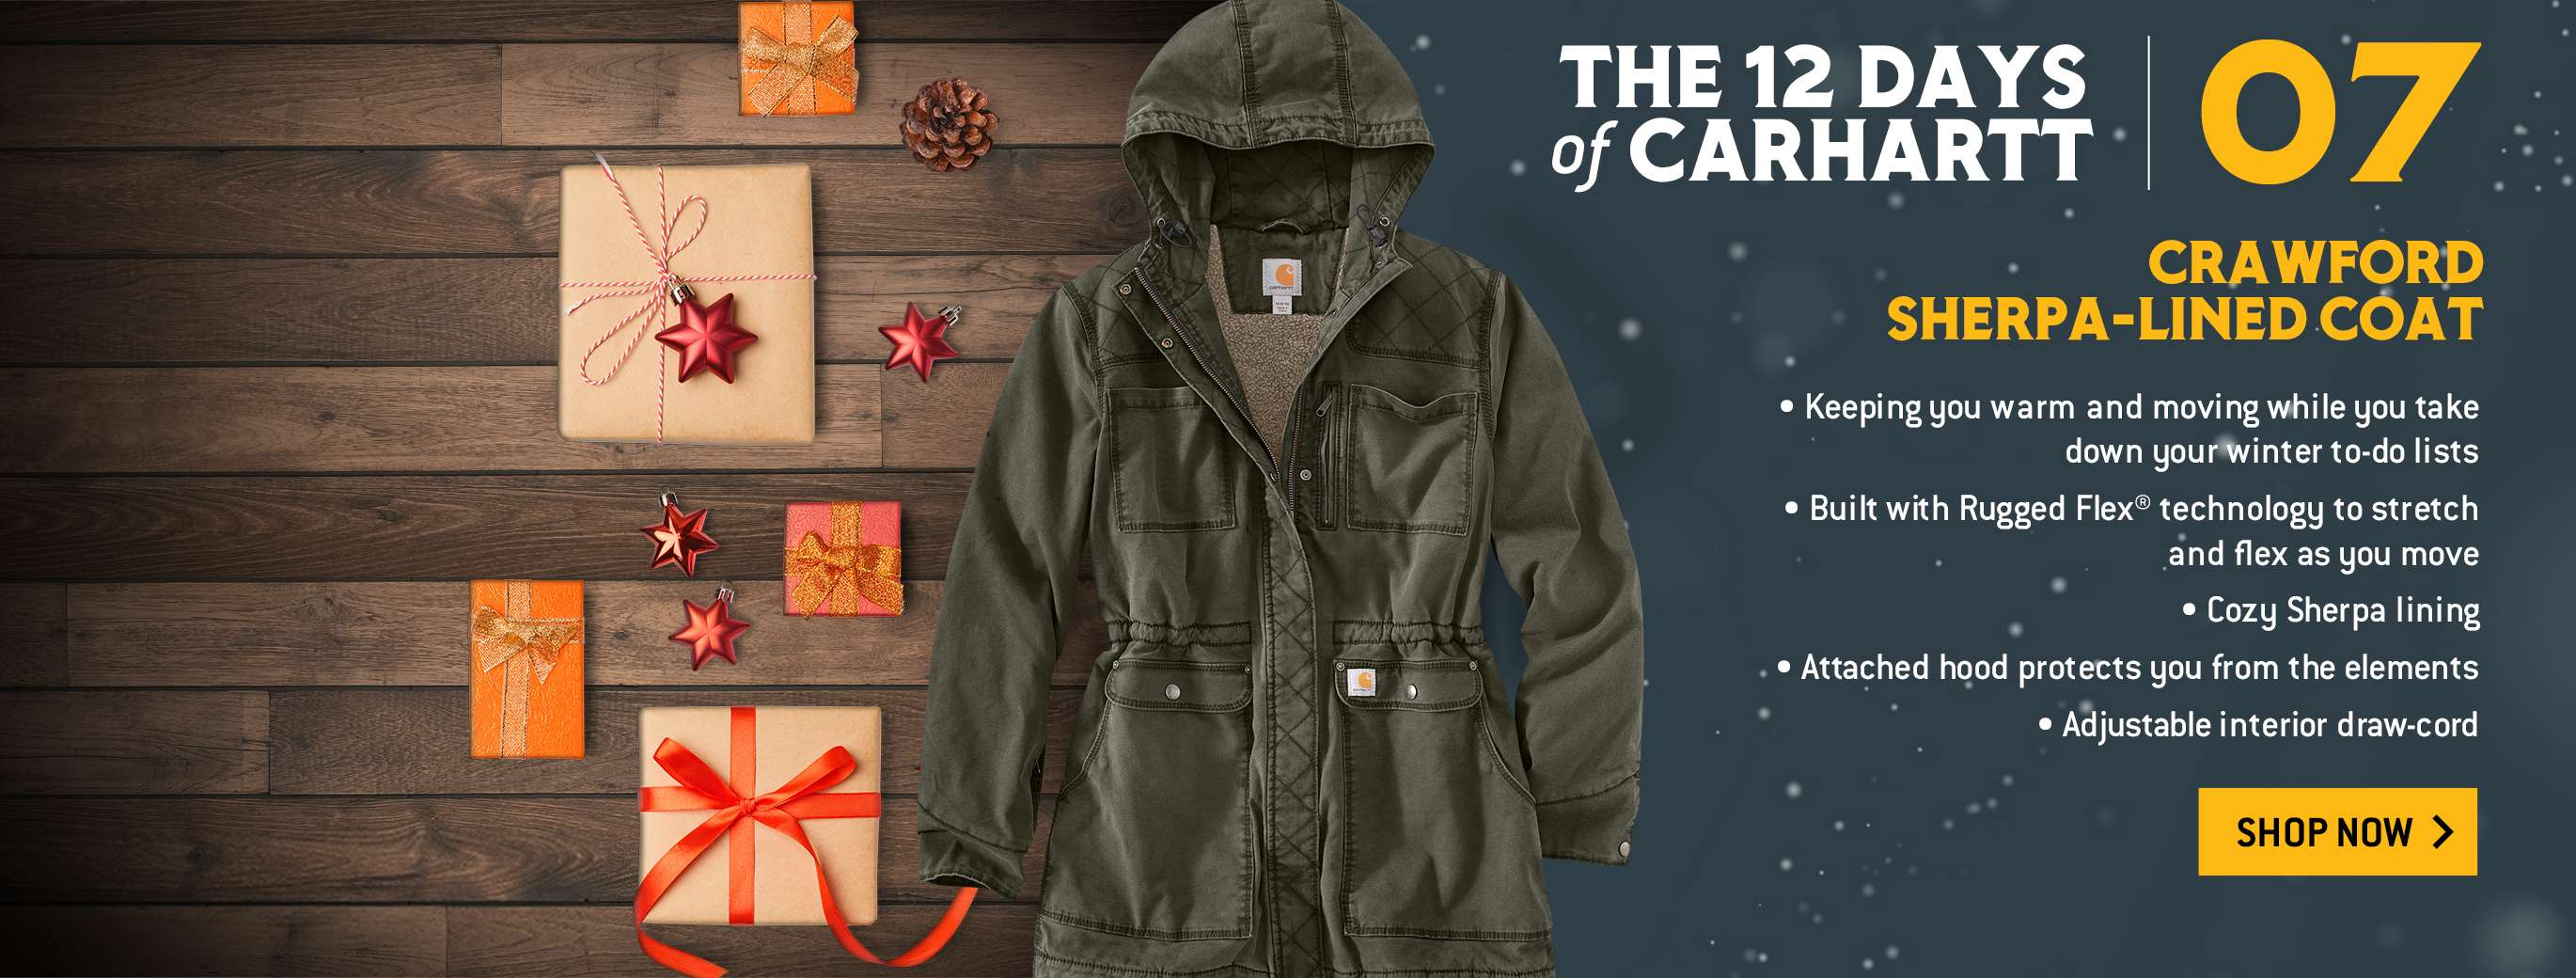 crawford sherpa lined coat, keeping you warm and moving while you take down your winter to-do lists